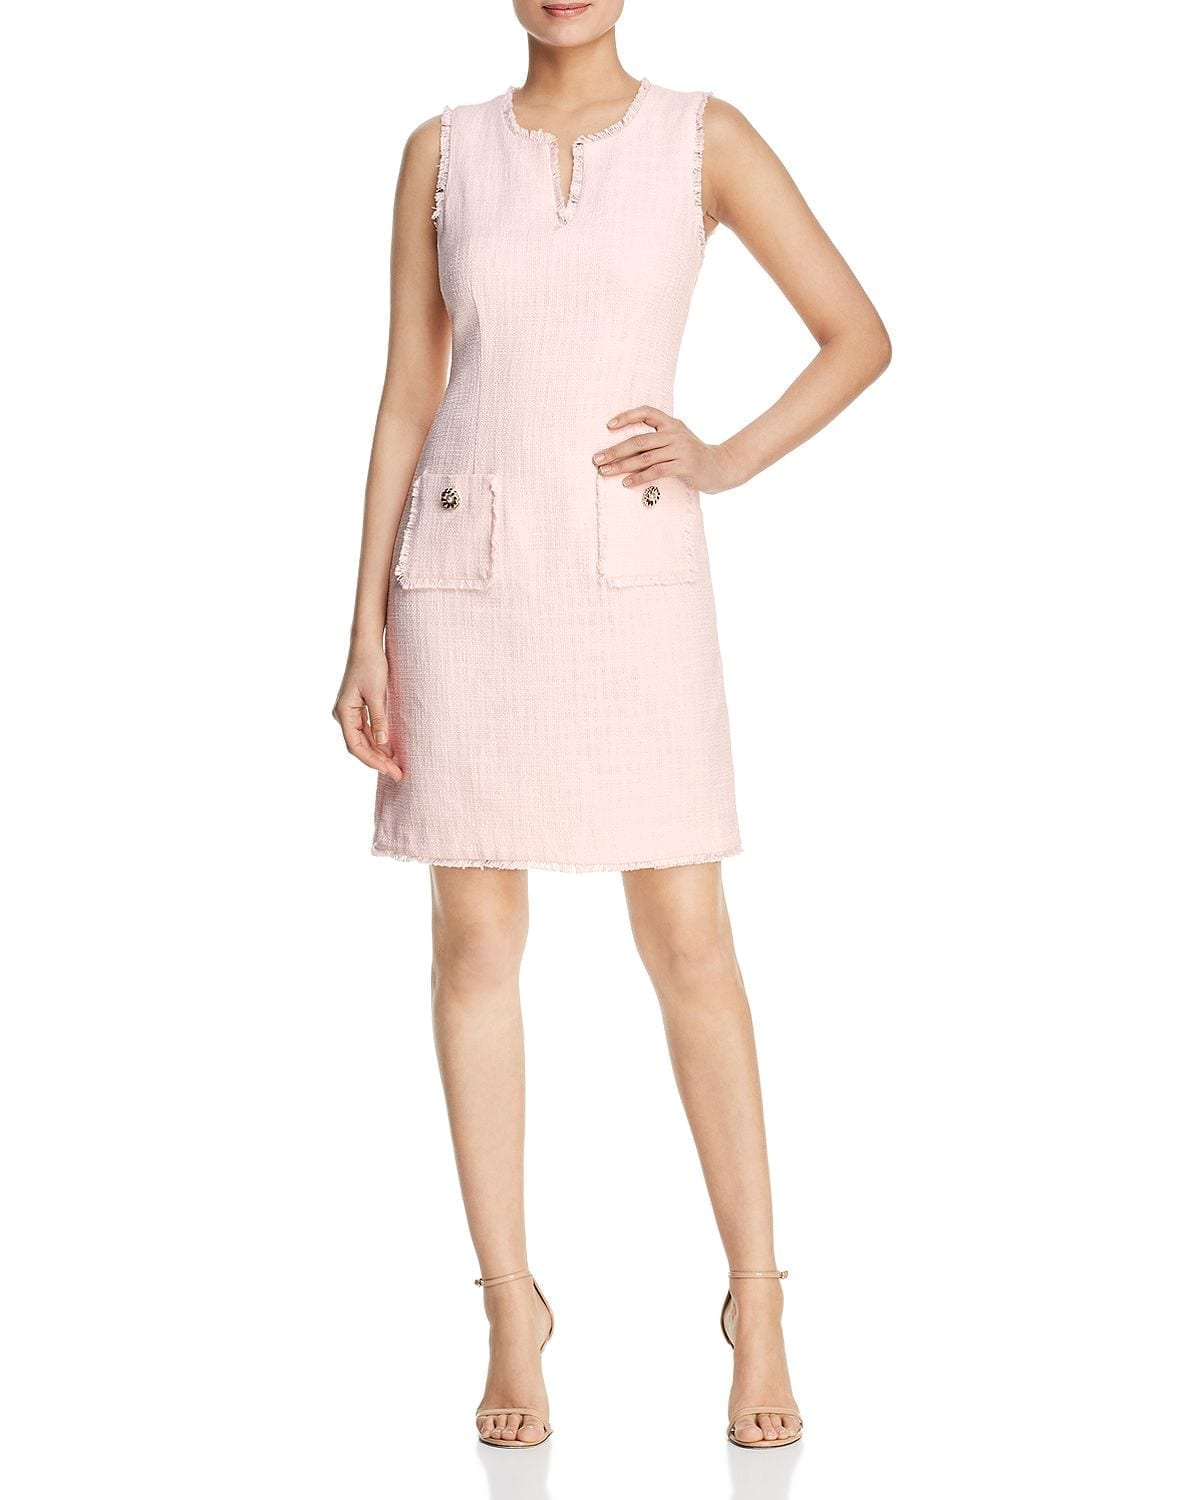 KARL LAGERFELD PARIS Tonal Tweed Pocket Dress